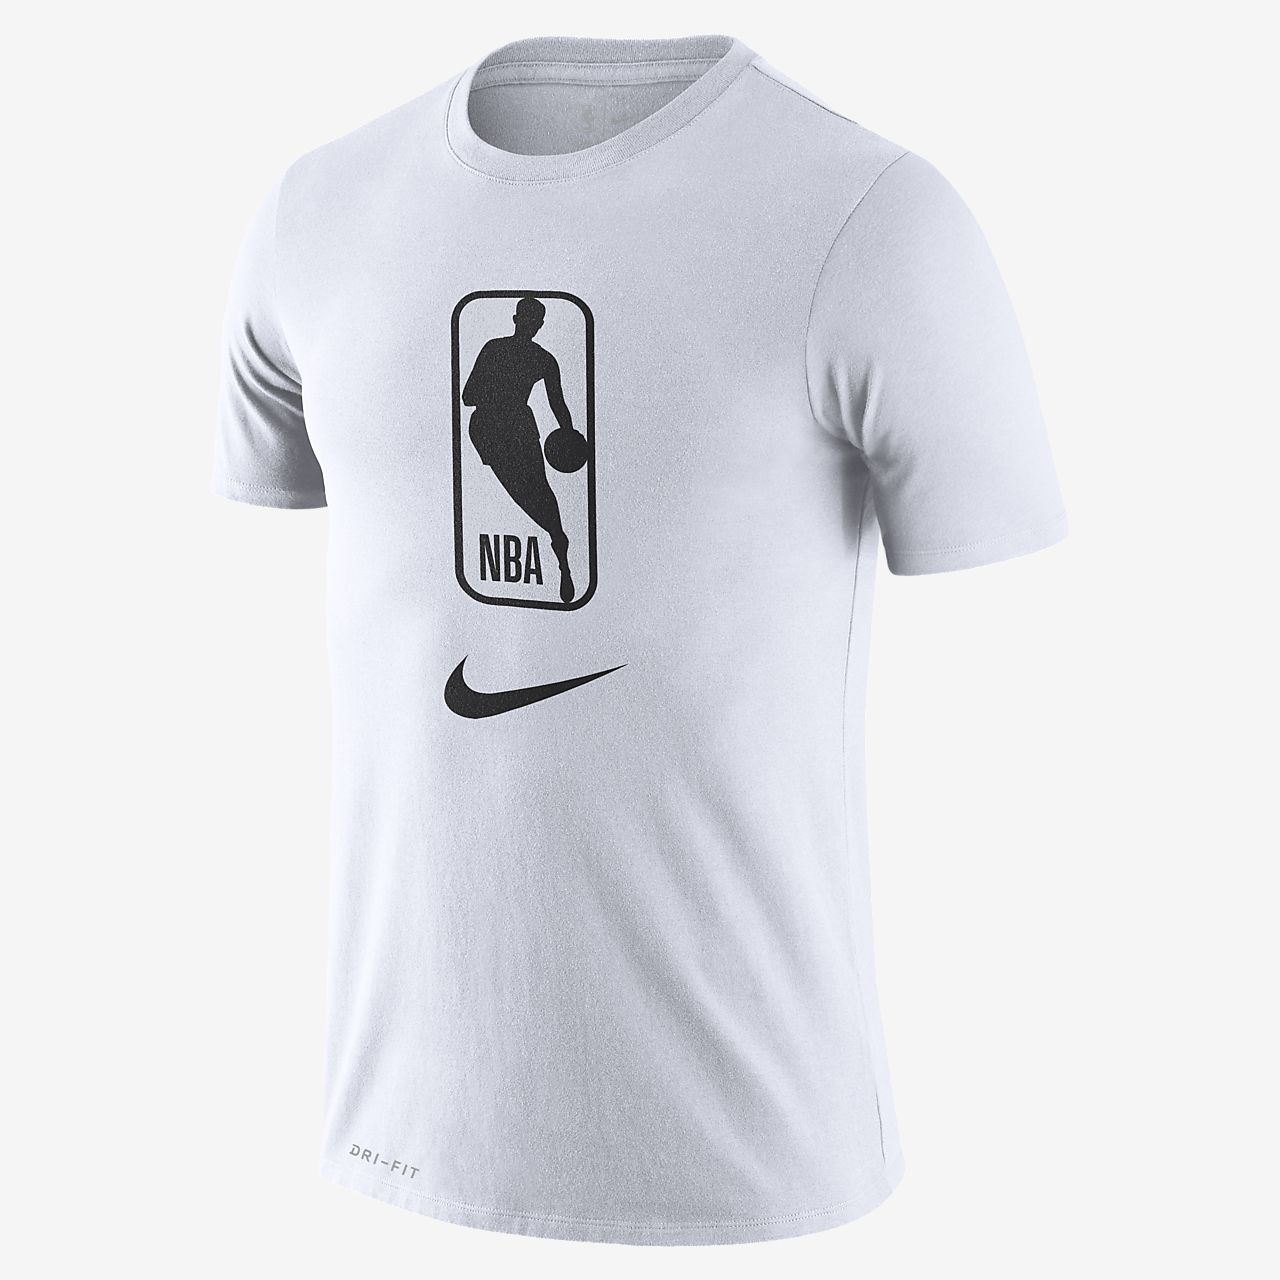 Team 31 Nike Dri-FIT NBA-s férfipóló